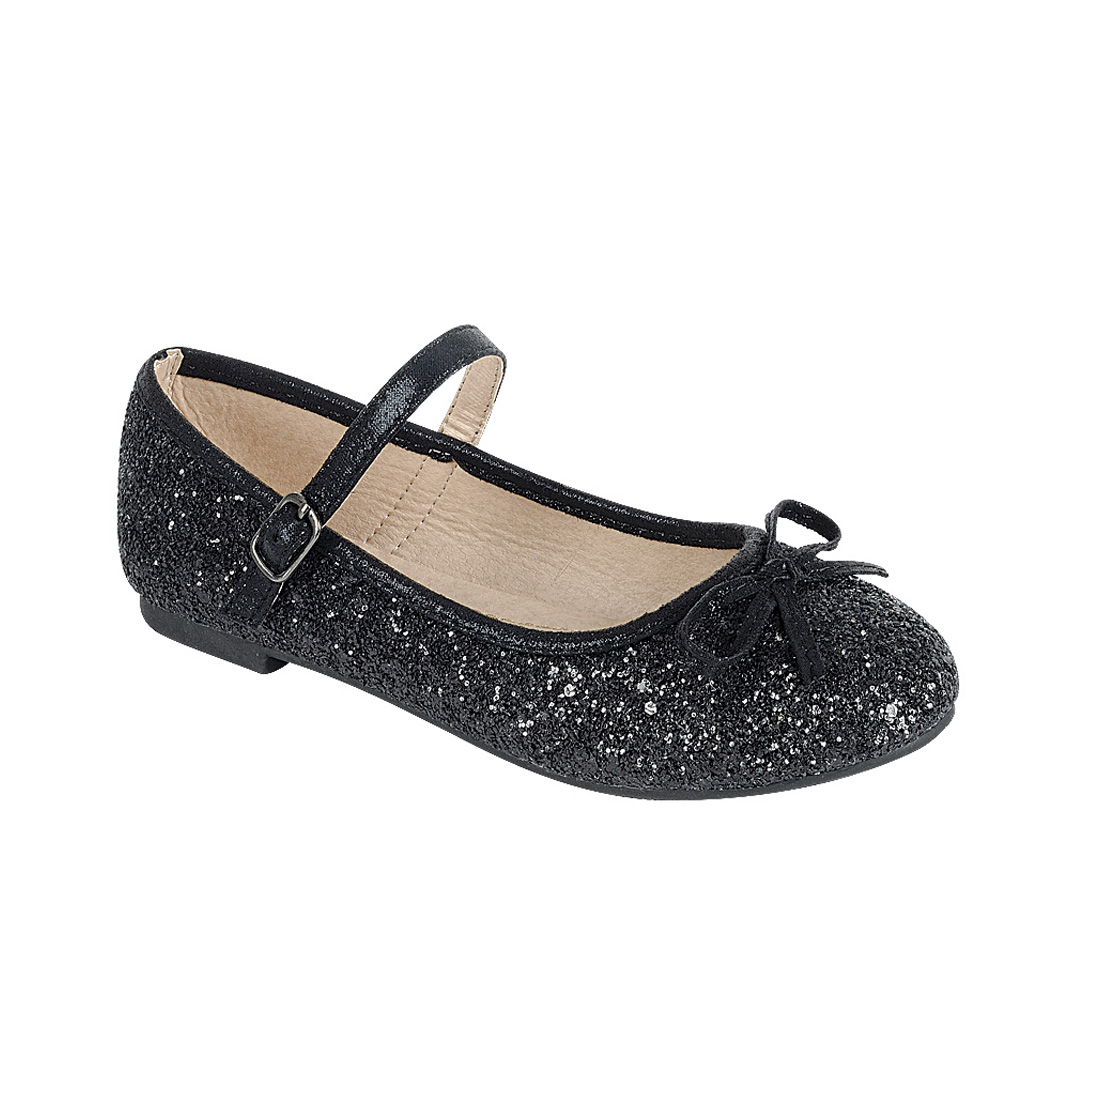 Link FP35 Girl's Glitter Bow Ballerina Party Dressed Flat Mary Janes